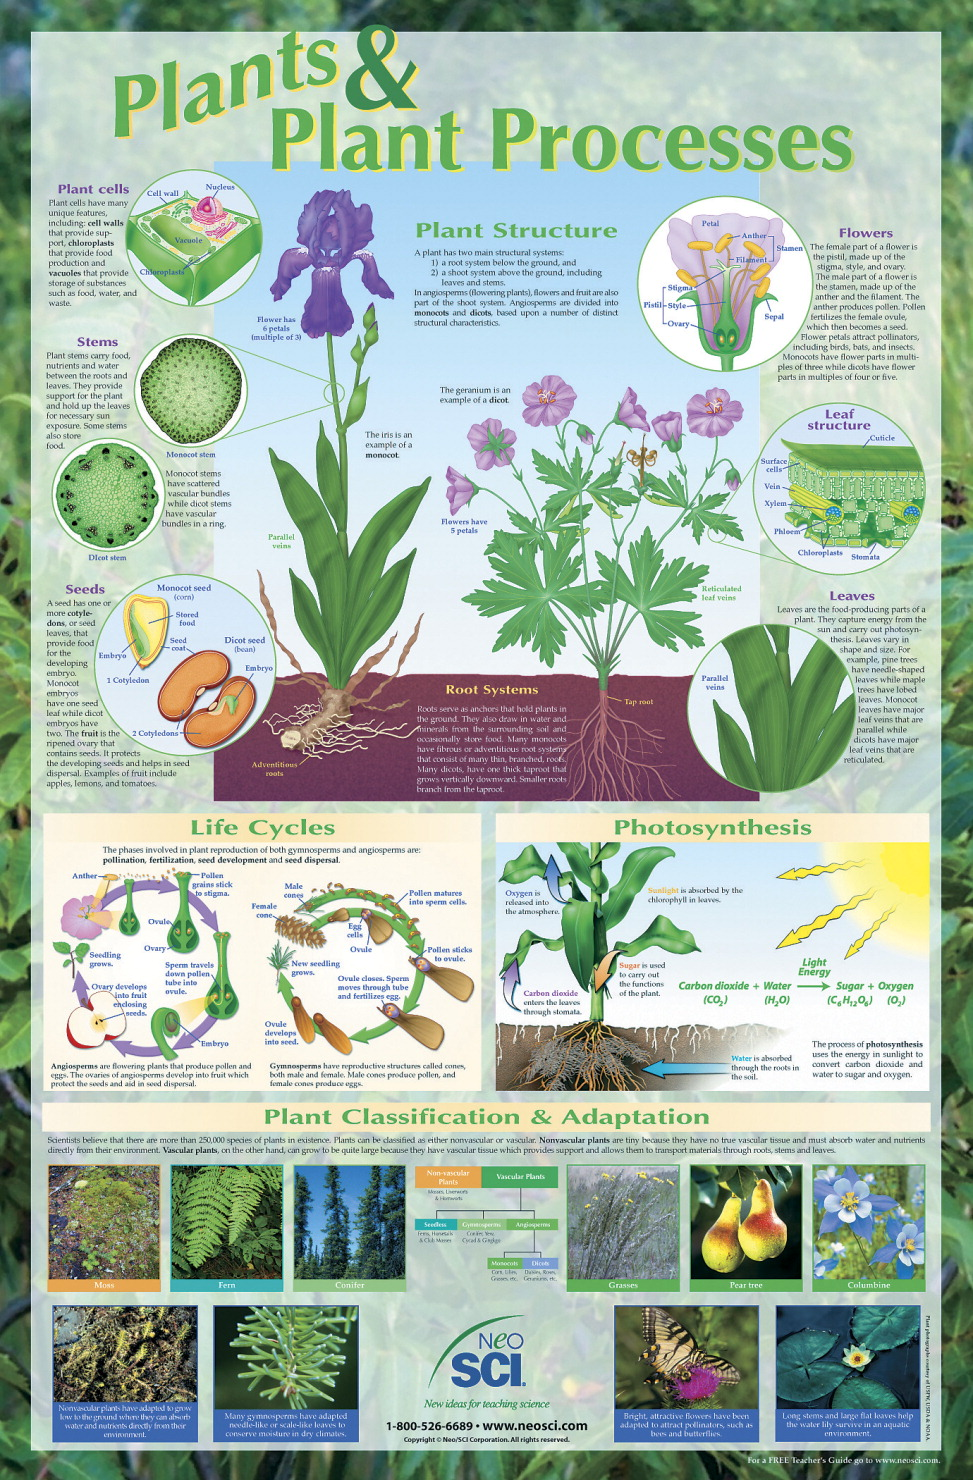 NeoSCI Plants and Plant Processes Laminated Poster, 23 in W X 35 in H, Grade 6 - 12